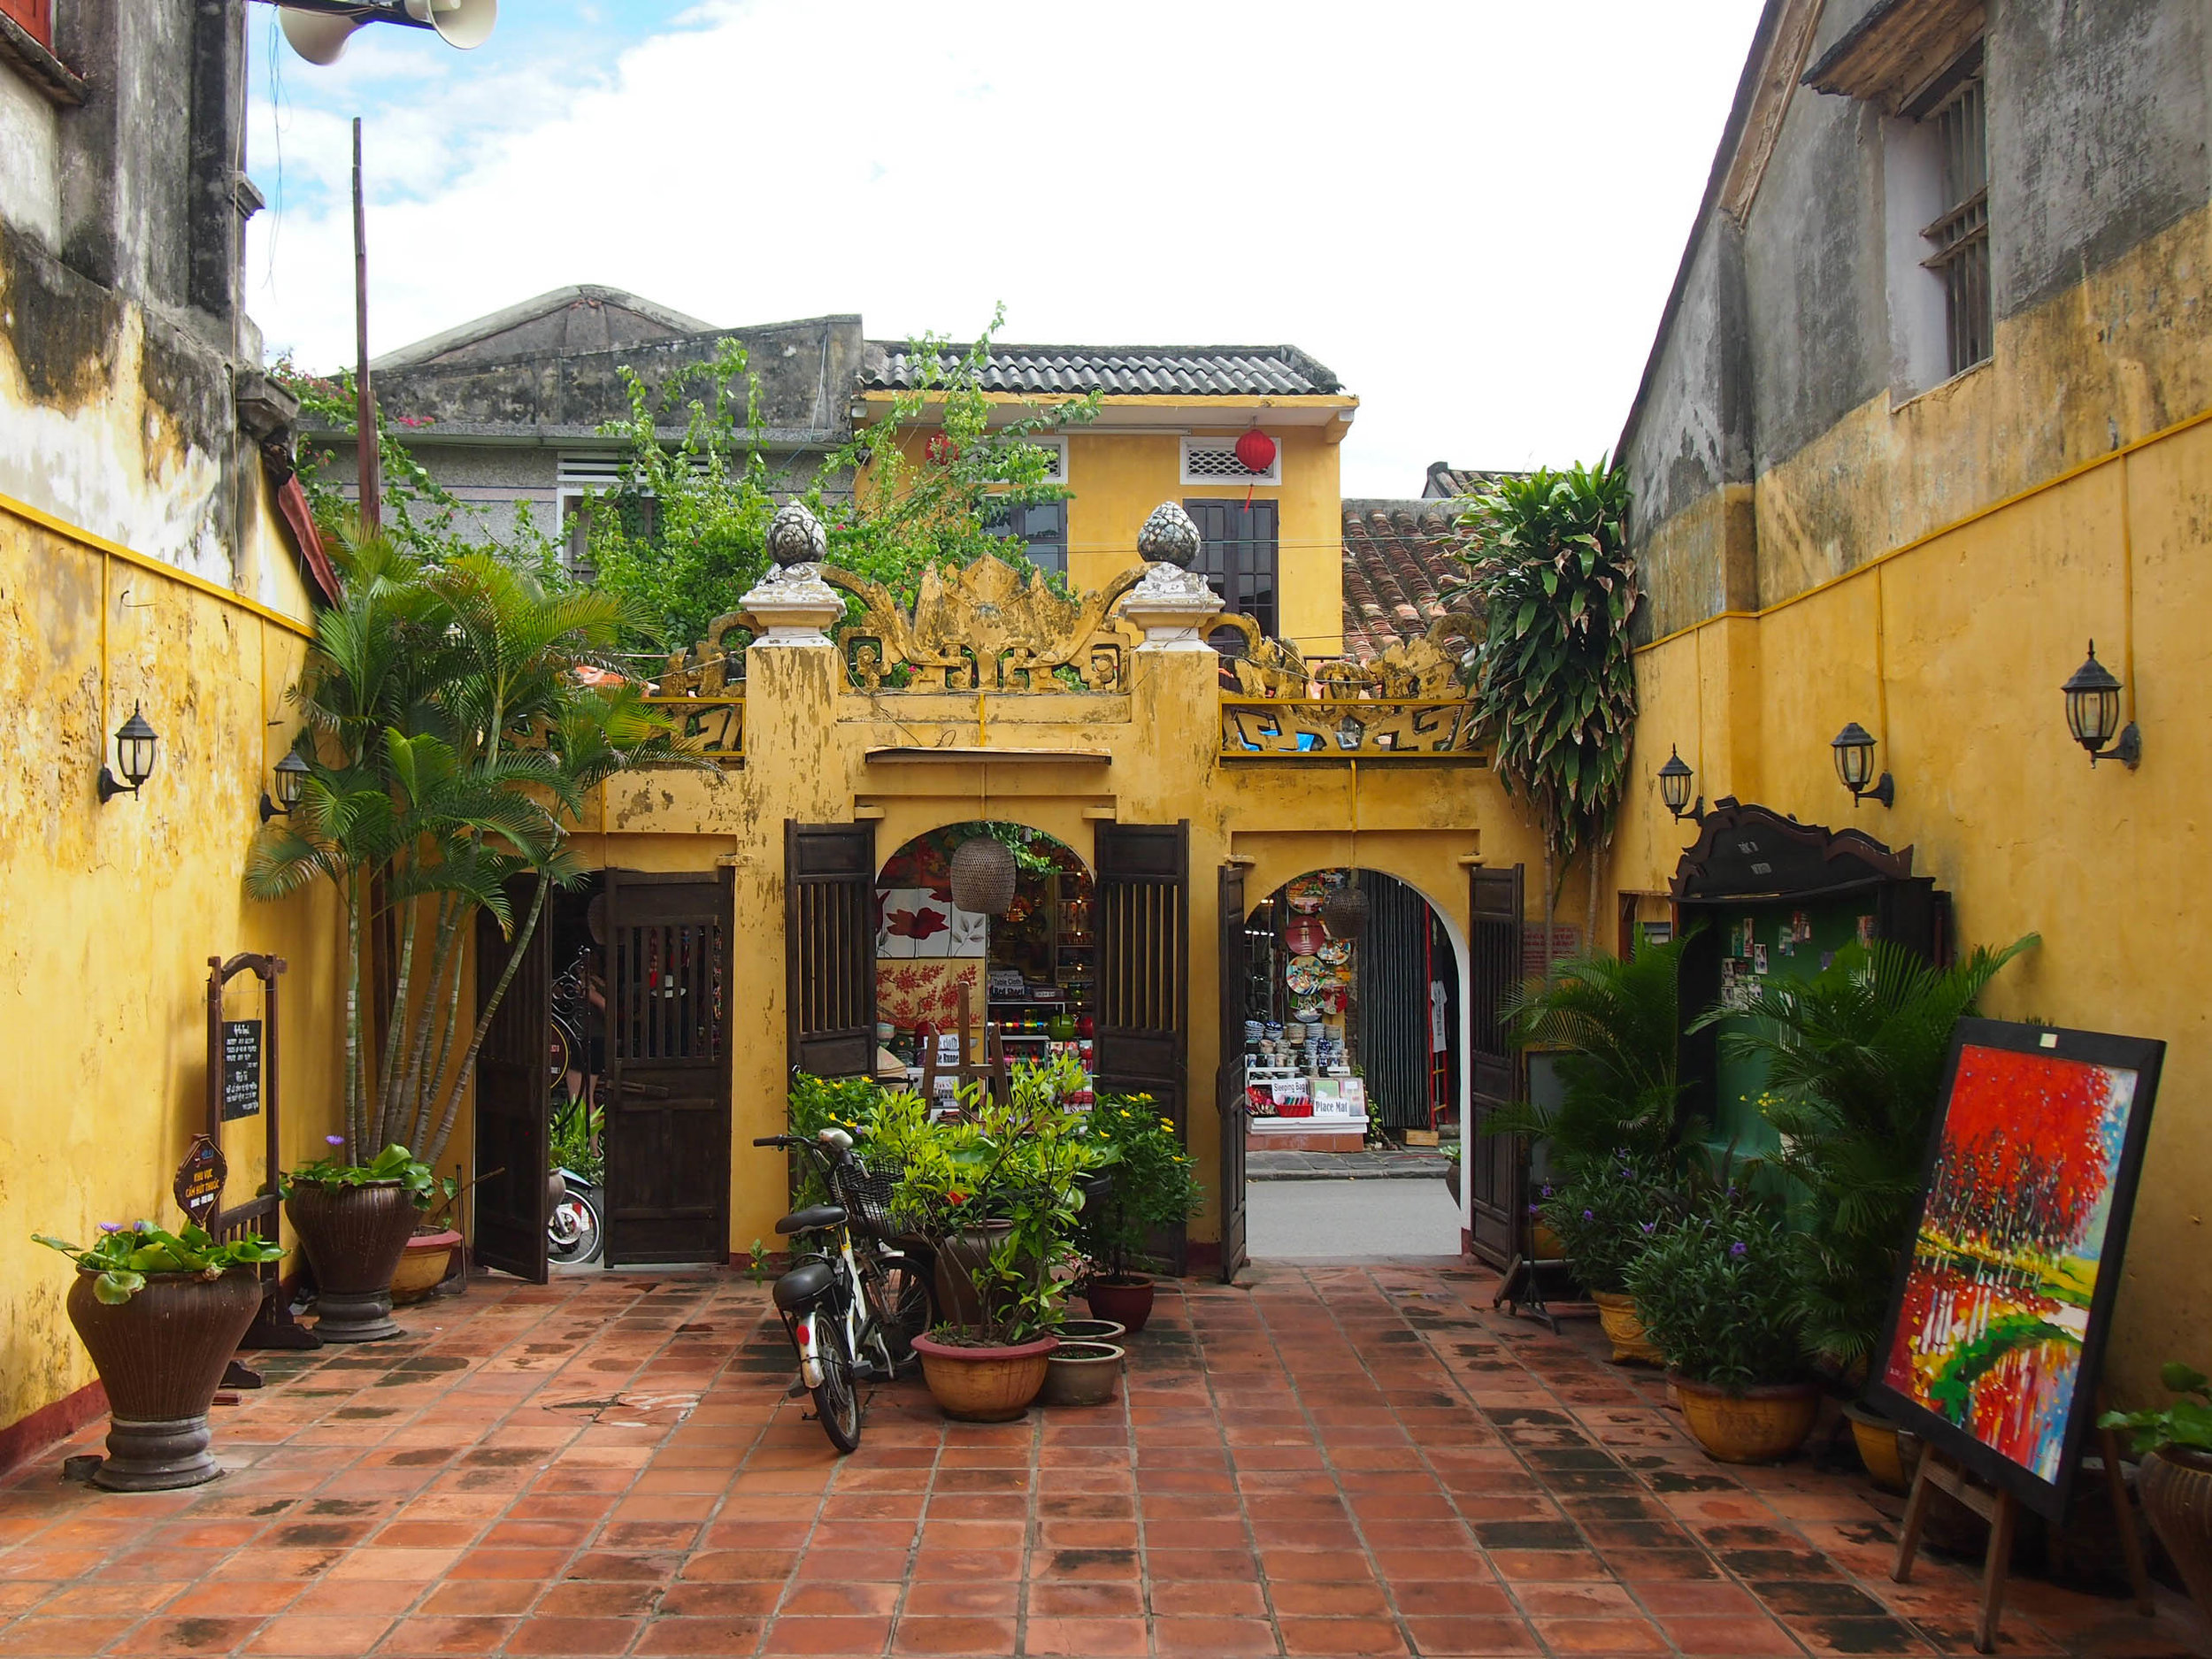 Hoi An is filled with art galleries like this one